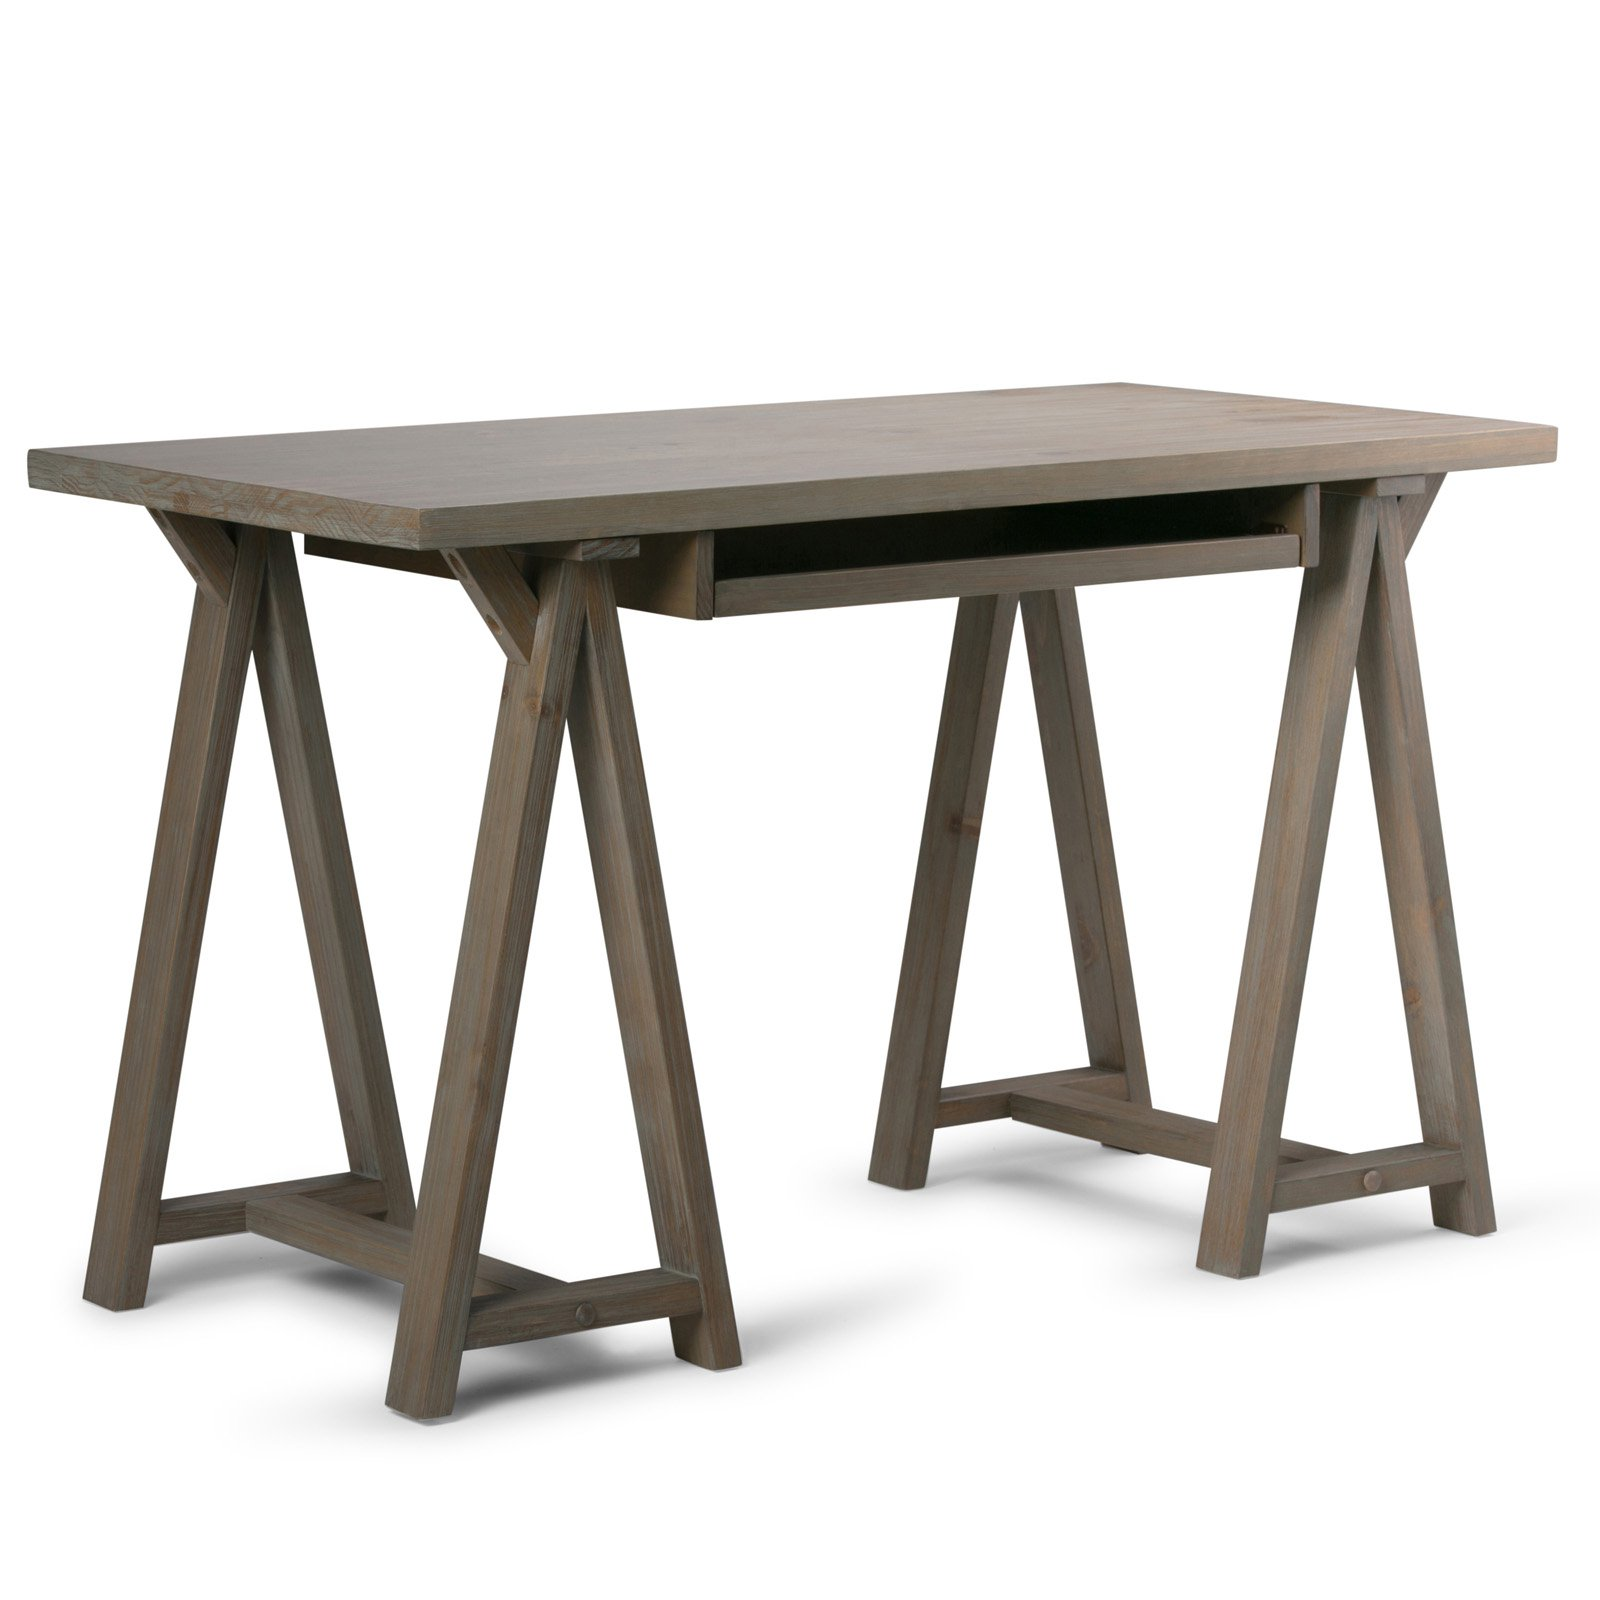 Simpli sawhorse small desk indoor home office furniture wood distressed grey new